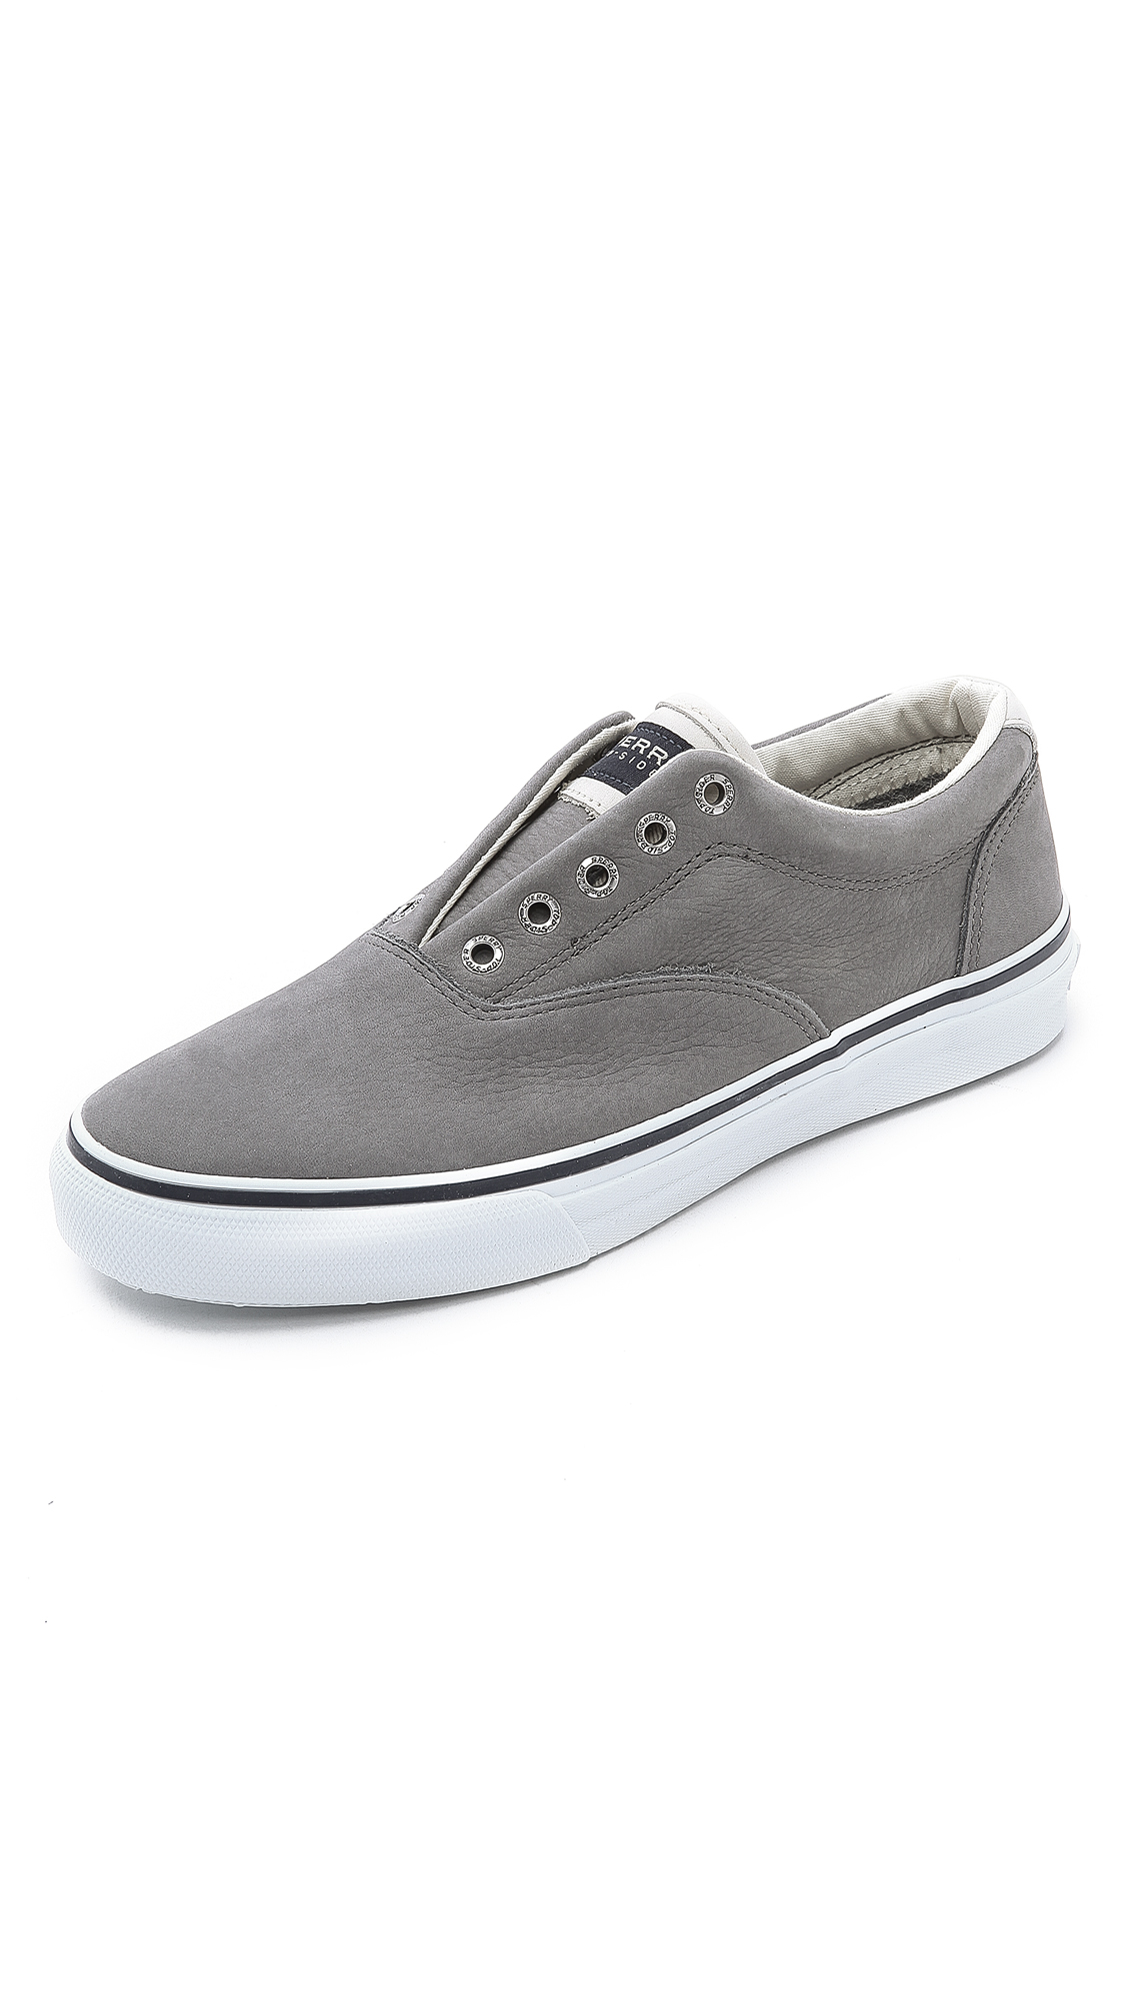 Mens Striper Ii CVO Washed Navy Trainers Sperry Top-Sider D59uA